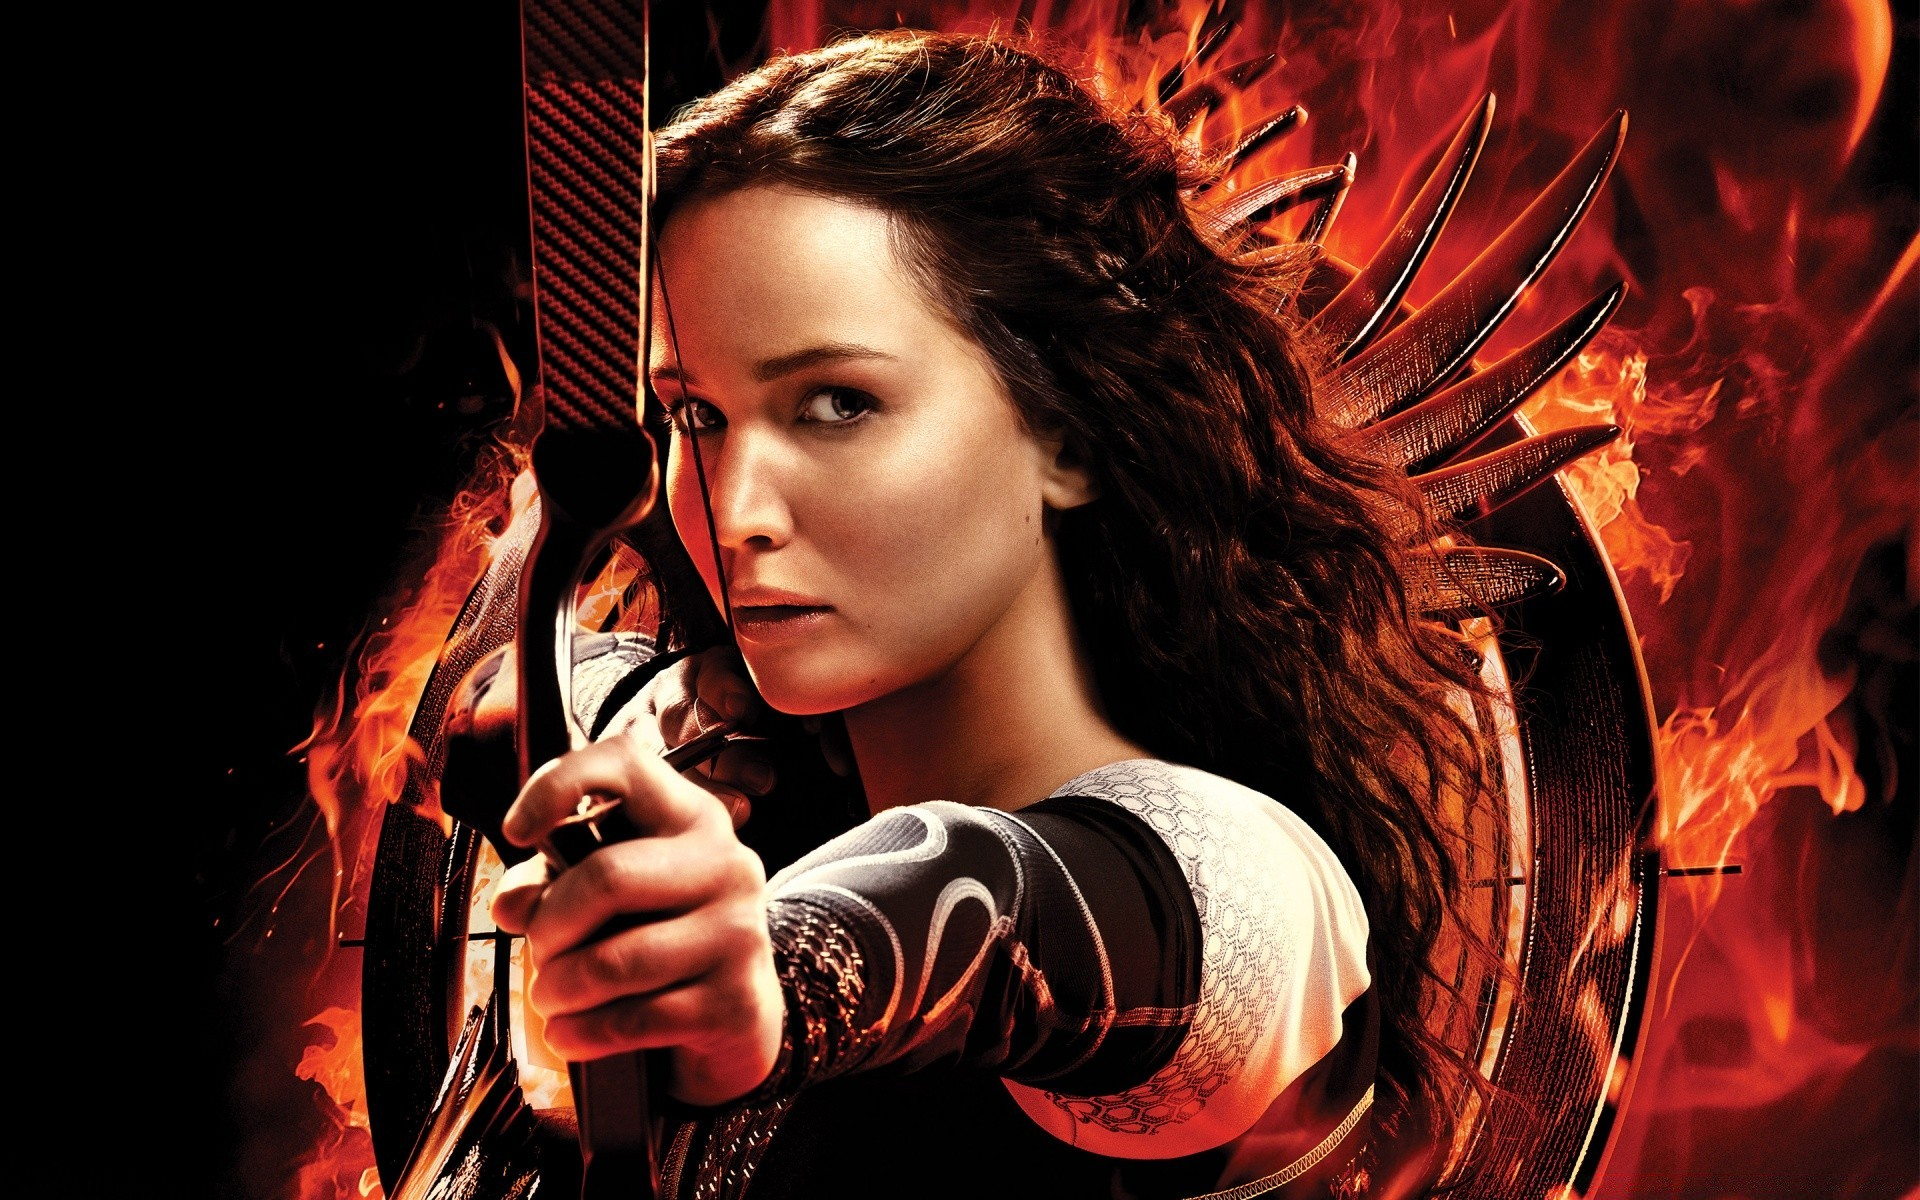 a comparison between the literary characters of beowulf and katniss everdeen The political message of the hunger games katniss everdeen is not just saving her folks but she must free a whole it's a multiple character study on.